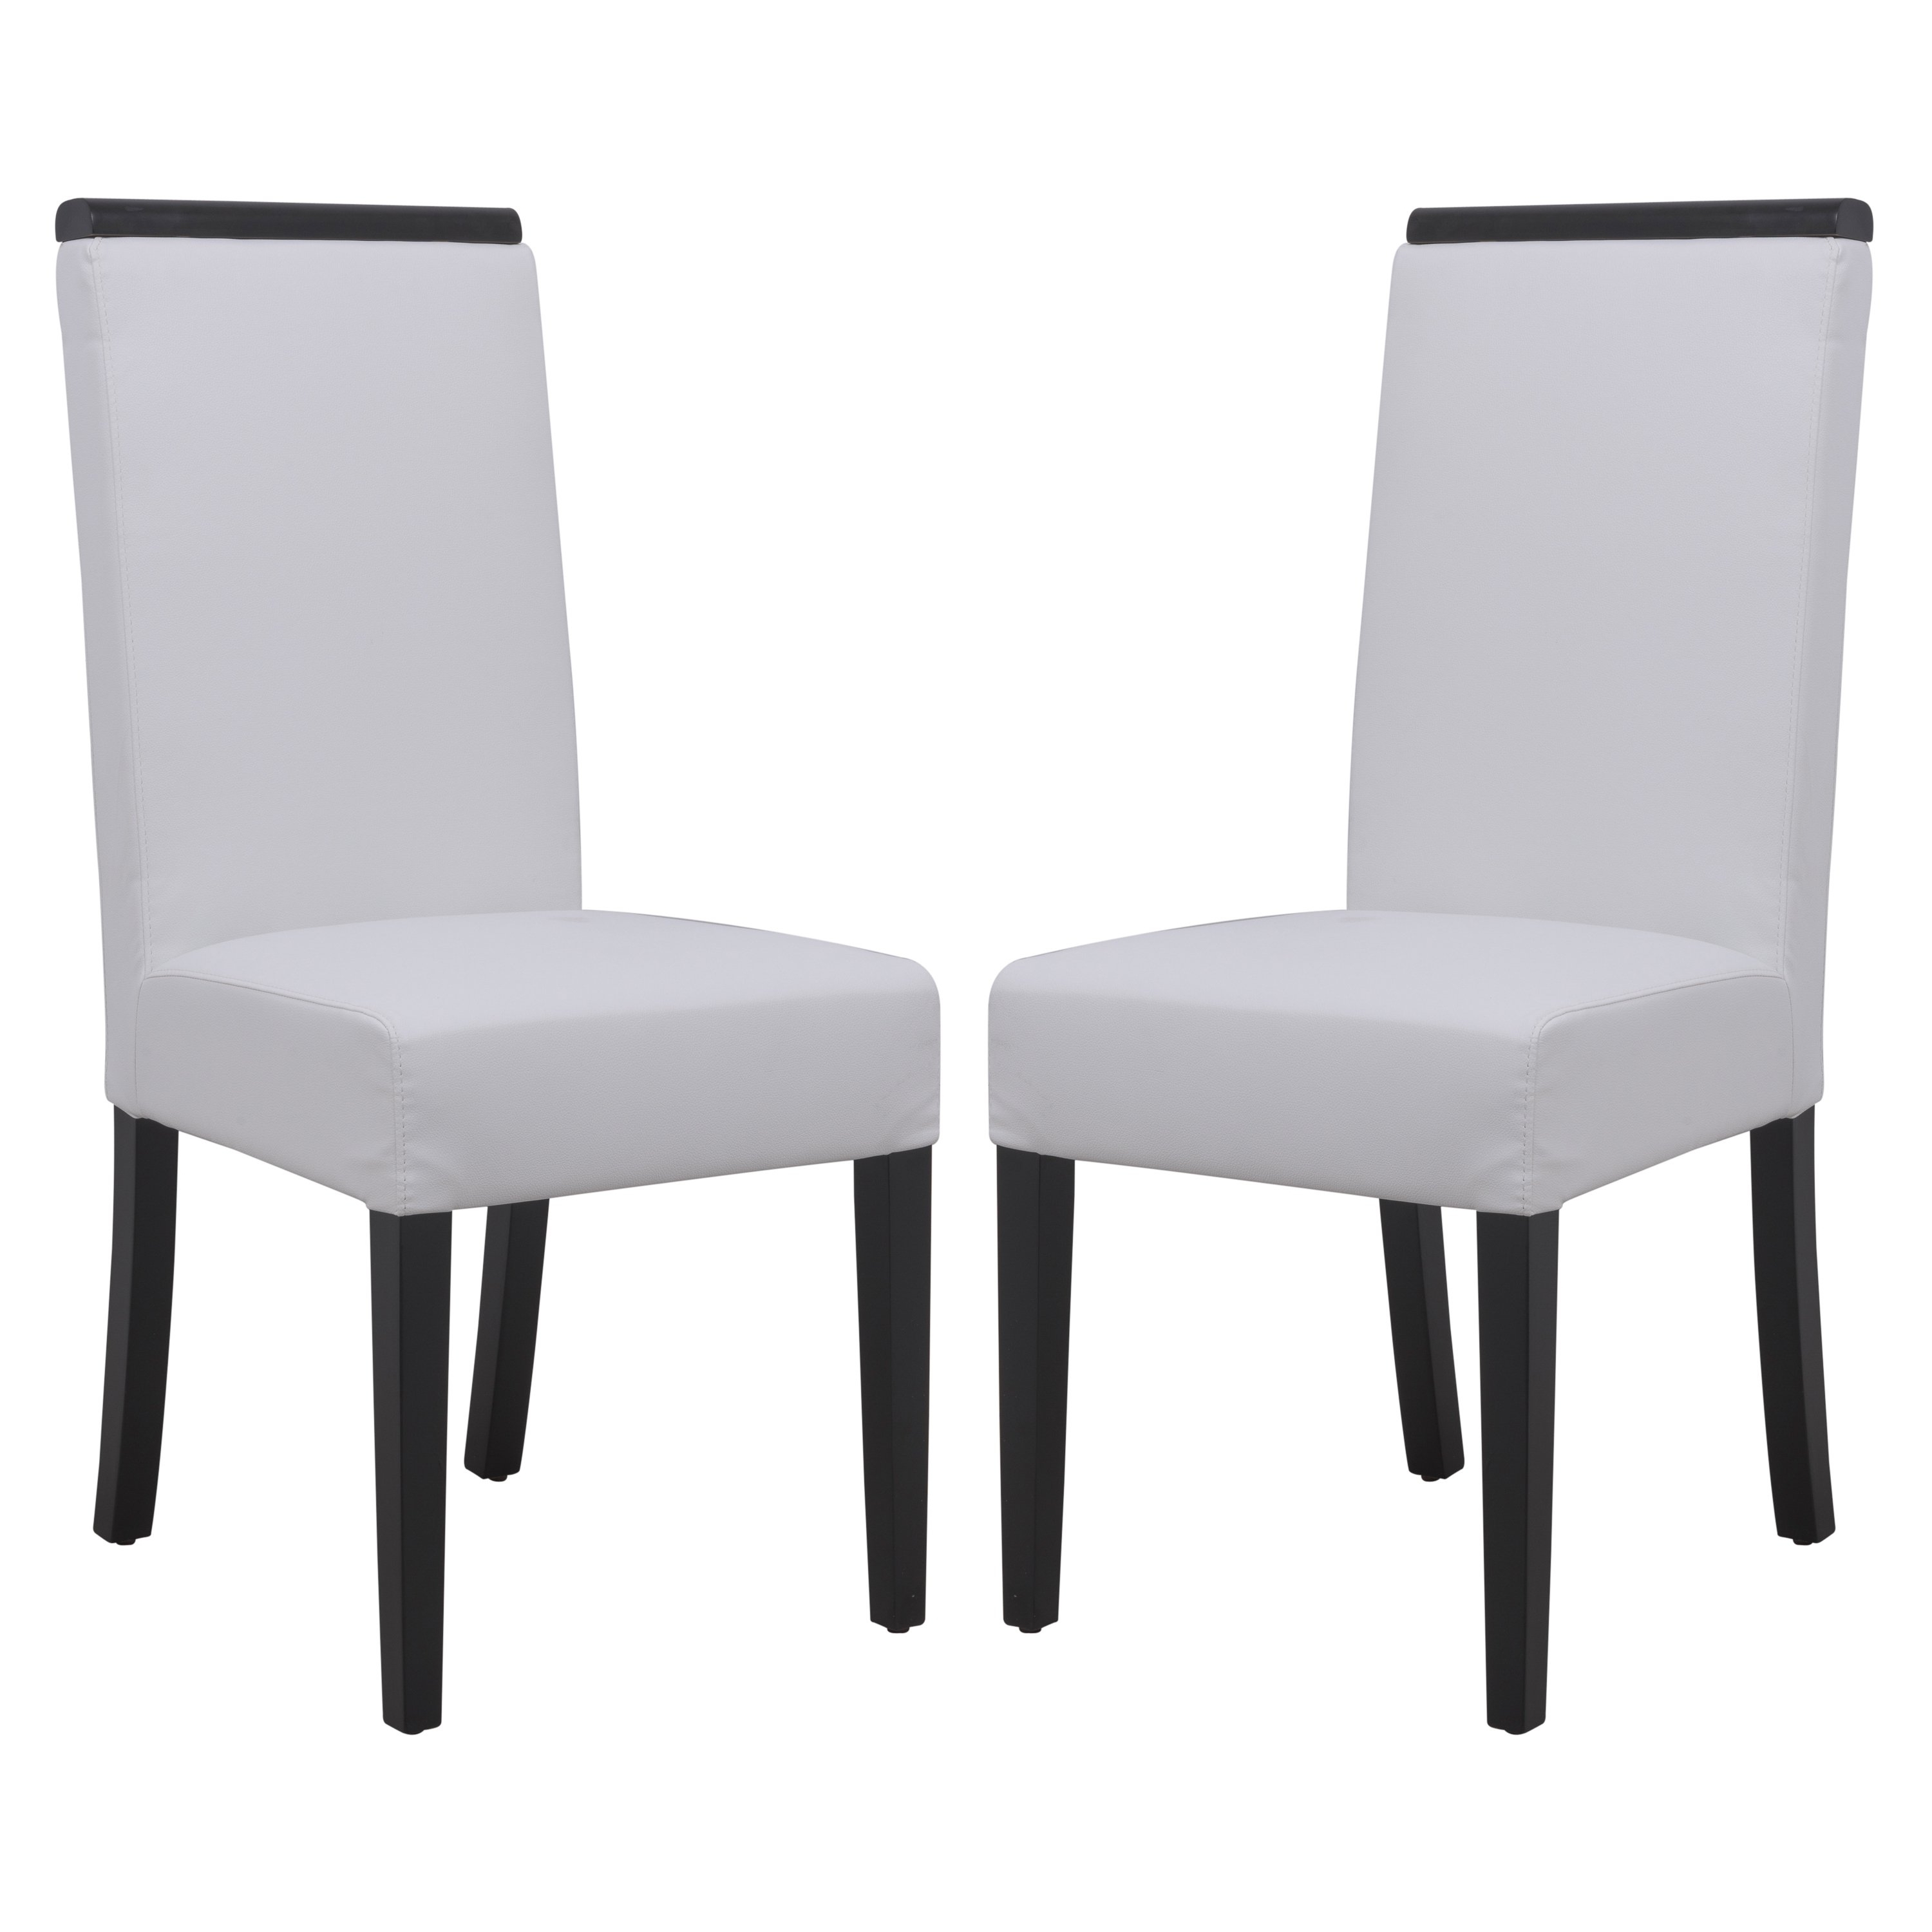 White Leather Dining Chairs For Widely Used Shop Leisuremod Elroy White Faux Leather Dining Chair (Set Of  (View 19 of 25)